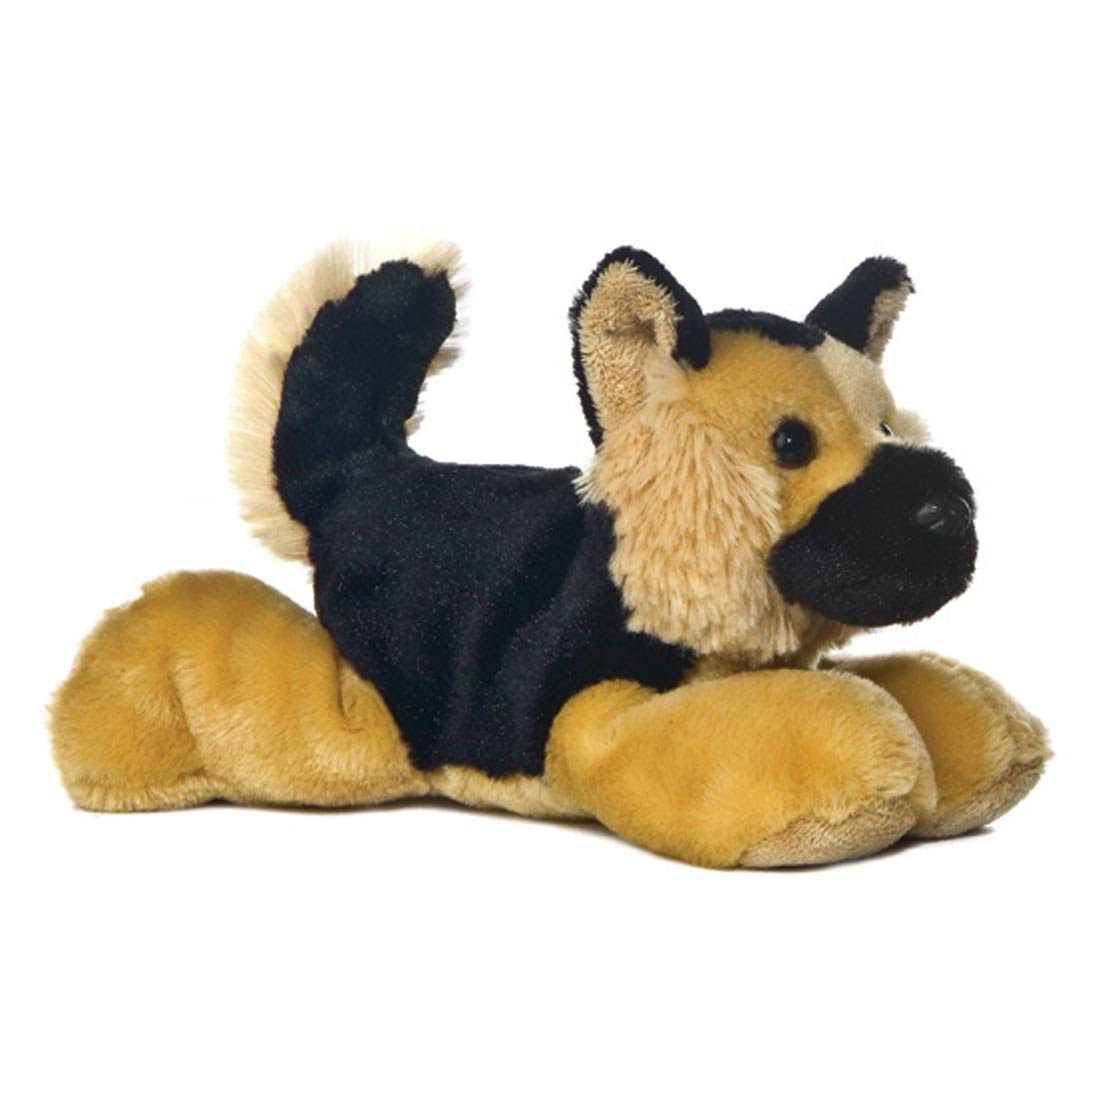 Aurora World The Mini Flopsie Baby Puppy Plush Toy - German Shepherd, 8""